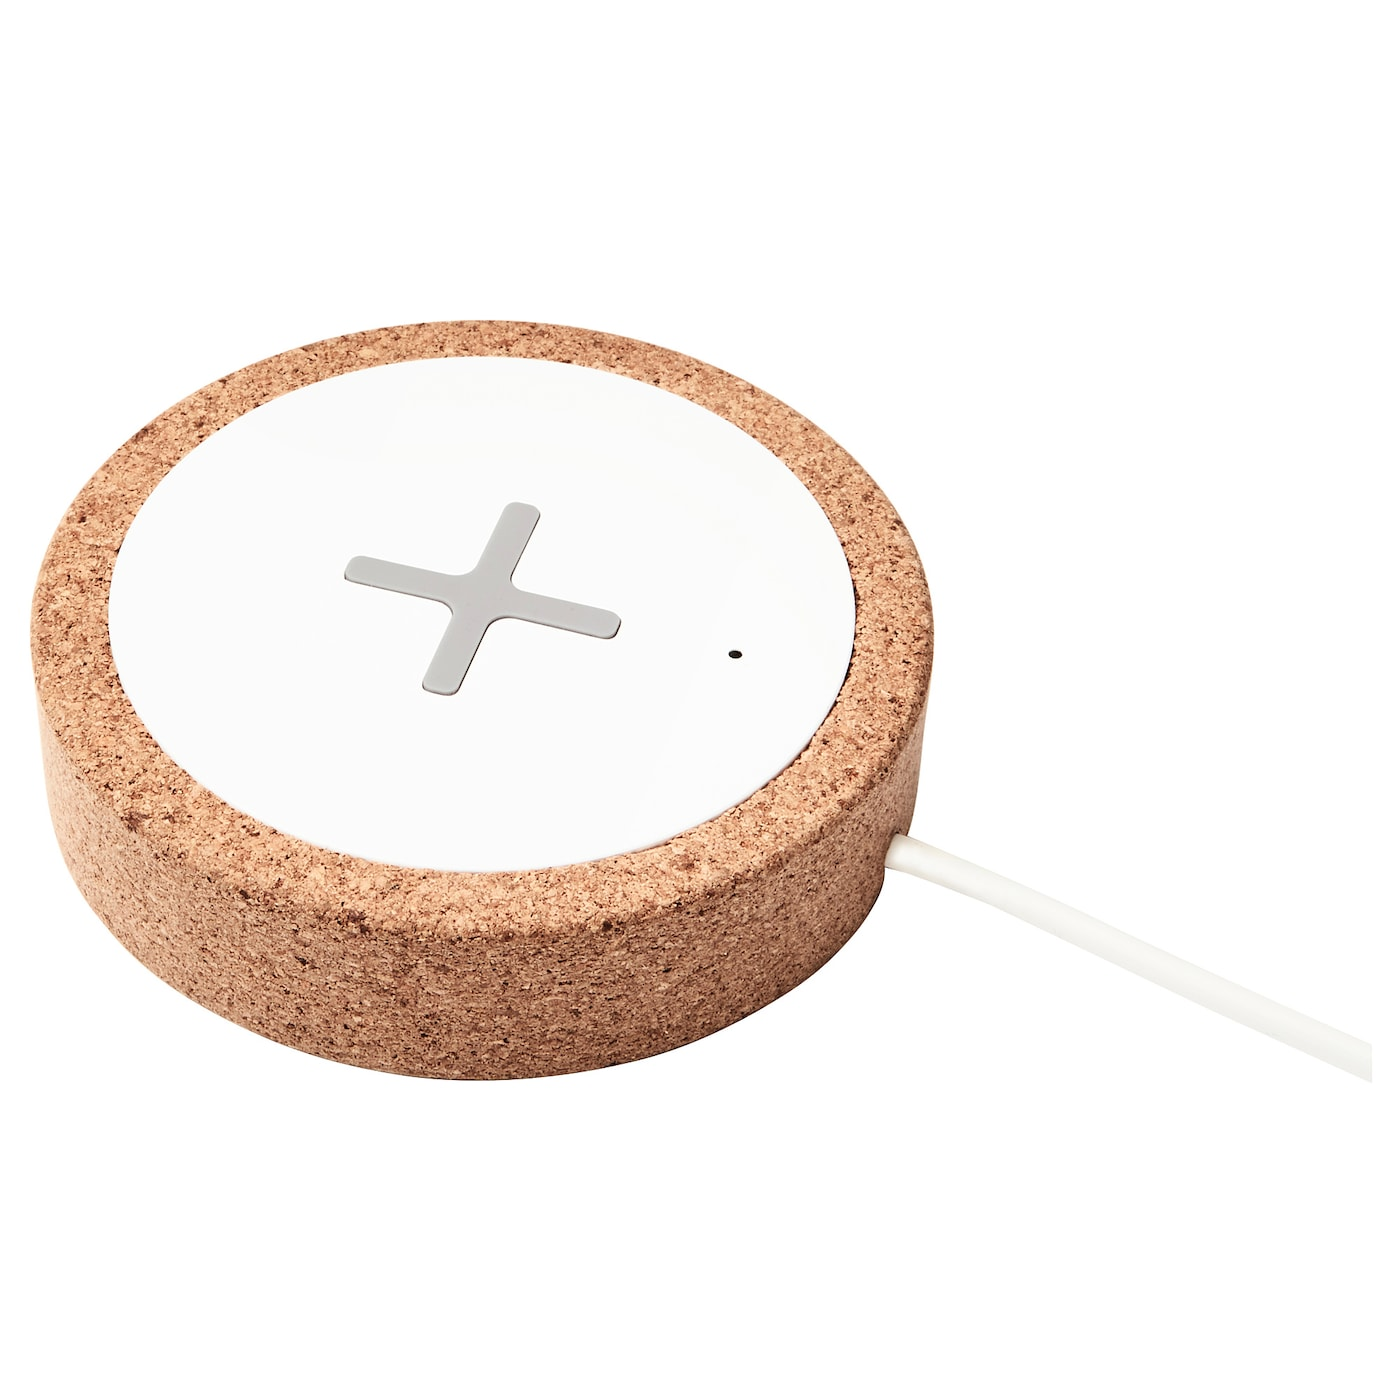 IKEA NORDMÄRKE wireless charger No more need to search for lost chargers and untangle messy cables.